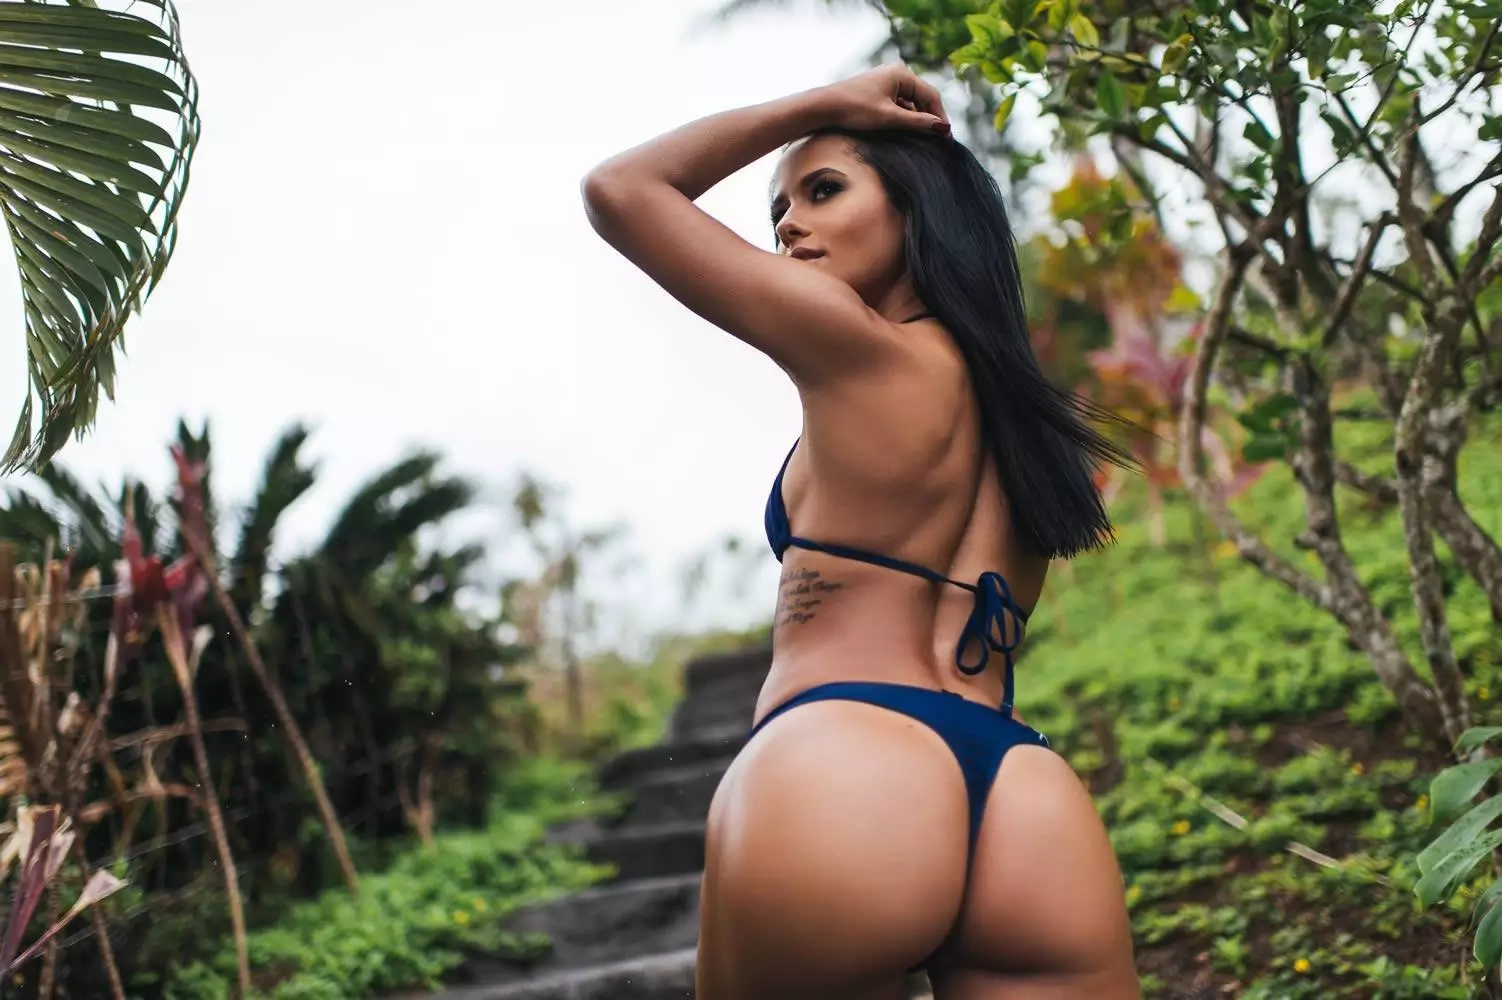 Stunning Girl Releases The Most Most Bootylicious Work-Out Video (NSFW)